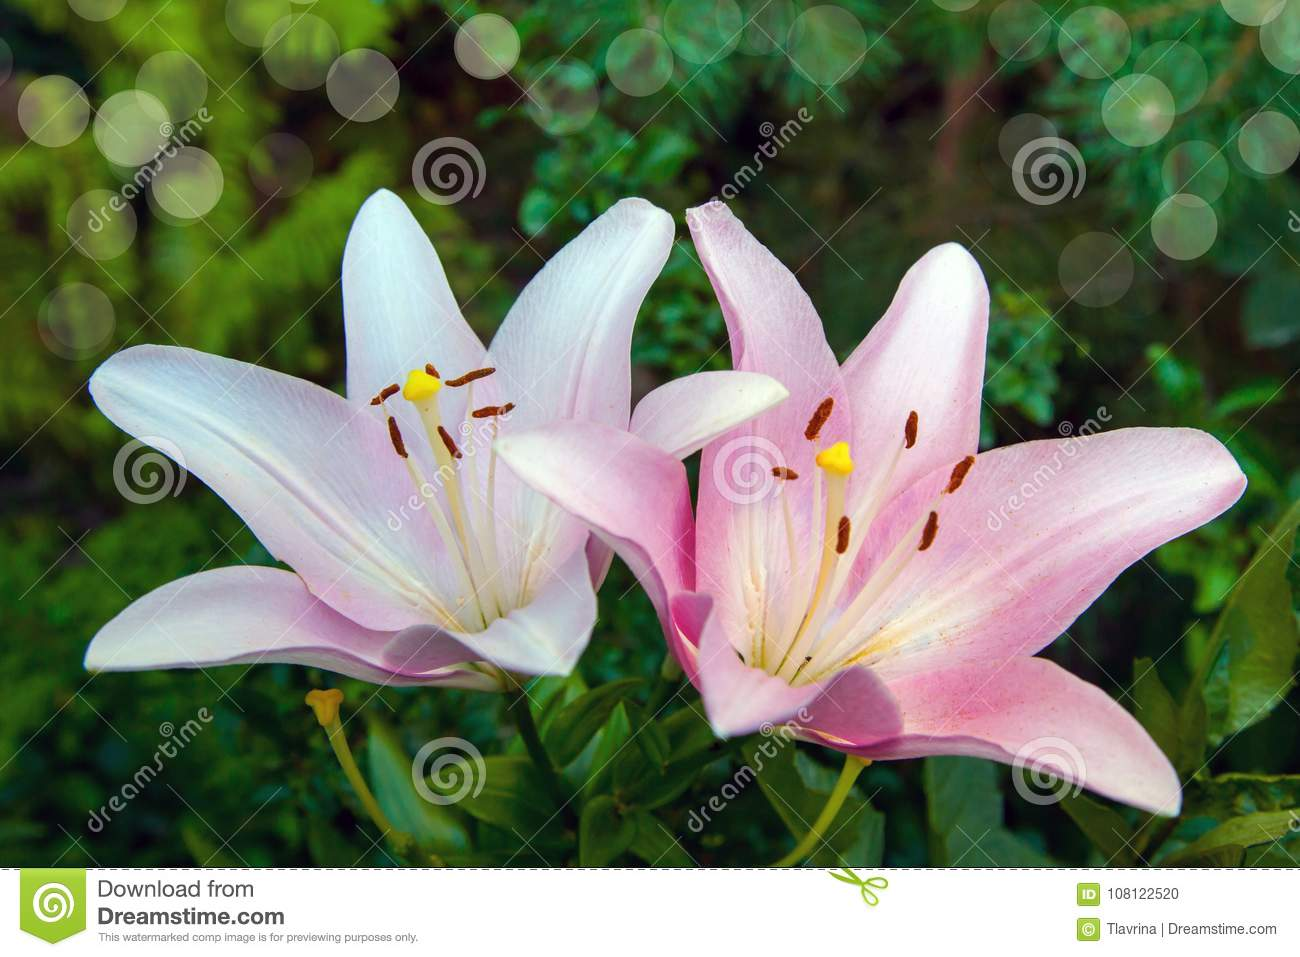 Flower White Rose Lily Close Up In The Garden Stock Photo Image Of